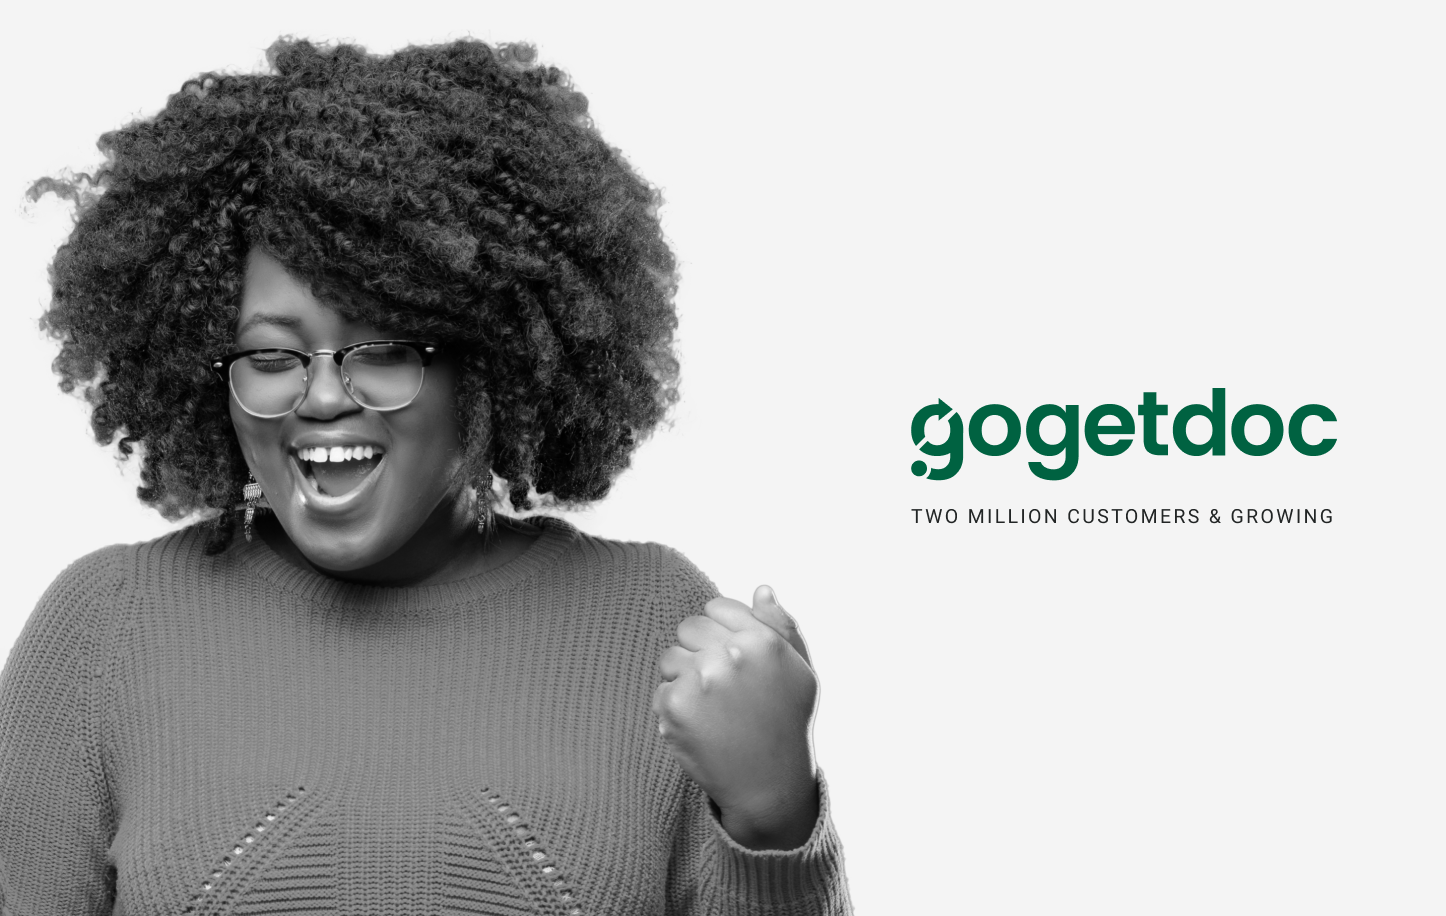 Today, we're excited to announce the new name of our Company, GoGetDoc.While our name has changed, our mission hasn't. We're more dedicated now than ever before to help all Americans, everywhere, find and use modern healthcare.